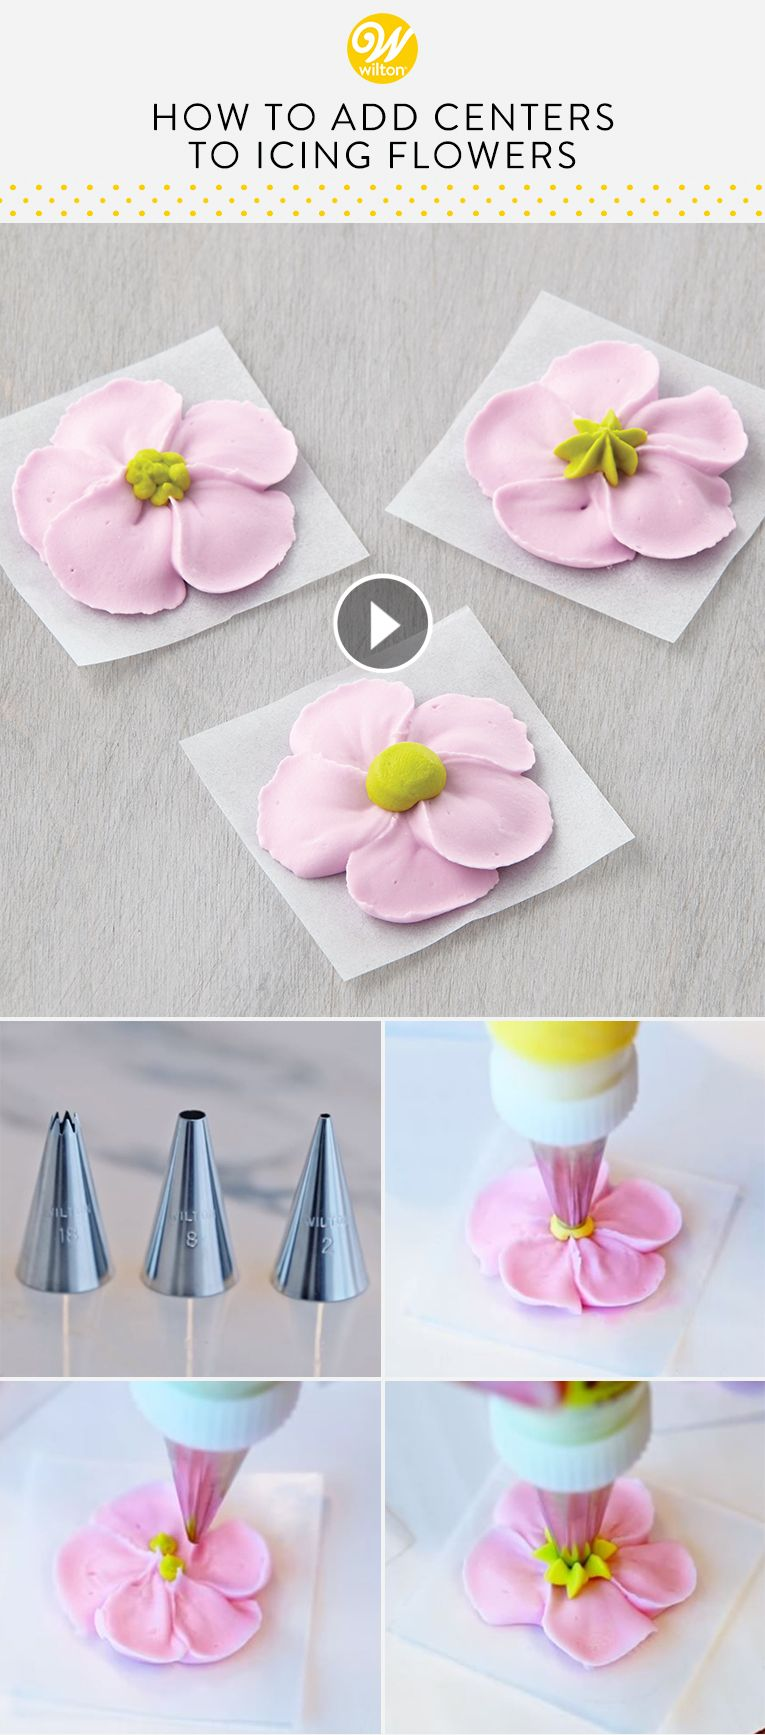 Watch this YouTube video and learn how to add a realistic touch to icing flowers using a round or star decorating tip! Icing flowers are perfect for dressing up cakes, cupcakes and other desserts. #wiltoncakes #youtube #howto #tutorial #video #videos #icingflowers #buttercreamflowers #pipingtips #homemade #petals #flowers #cakedecorating #cupcakedecorating #cookiedecorating #cakedecoratingvideos